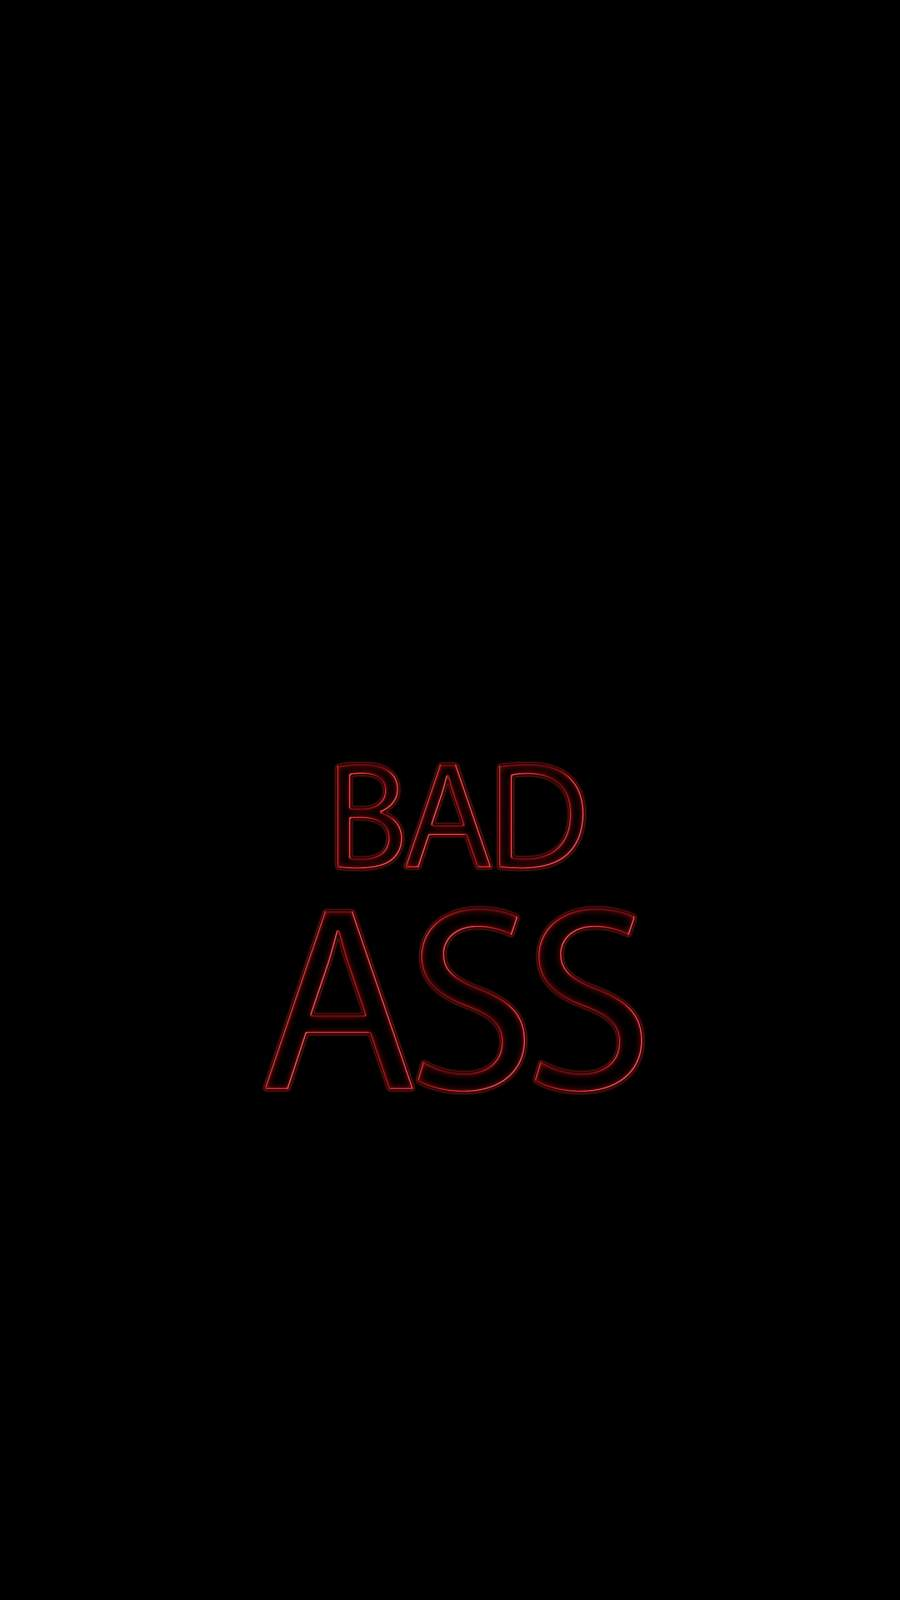 BadAss iPhone Wallpaper